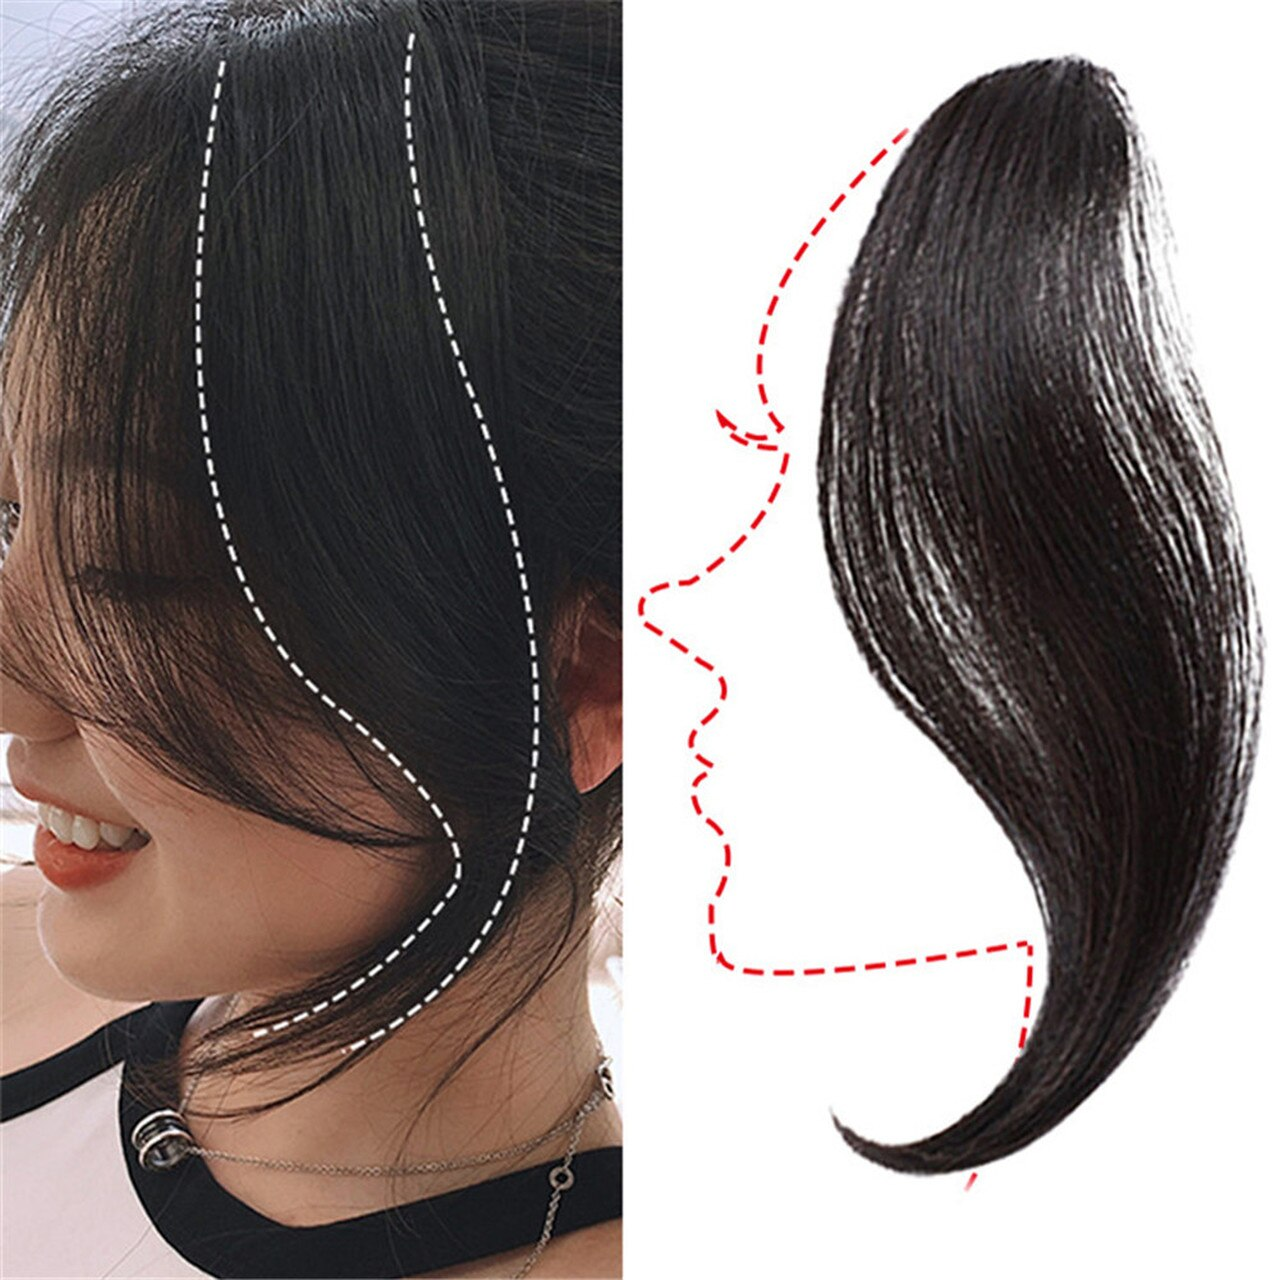 Clip In Air Fringe Long Hair Extension Side Fringe Middle Part Bang Hairpiece 3